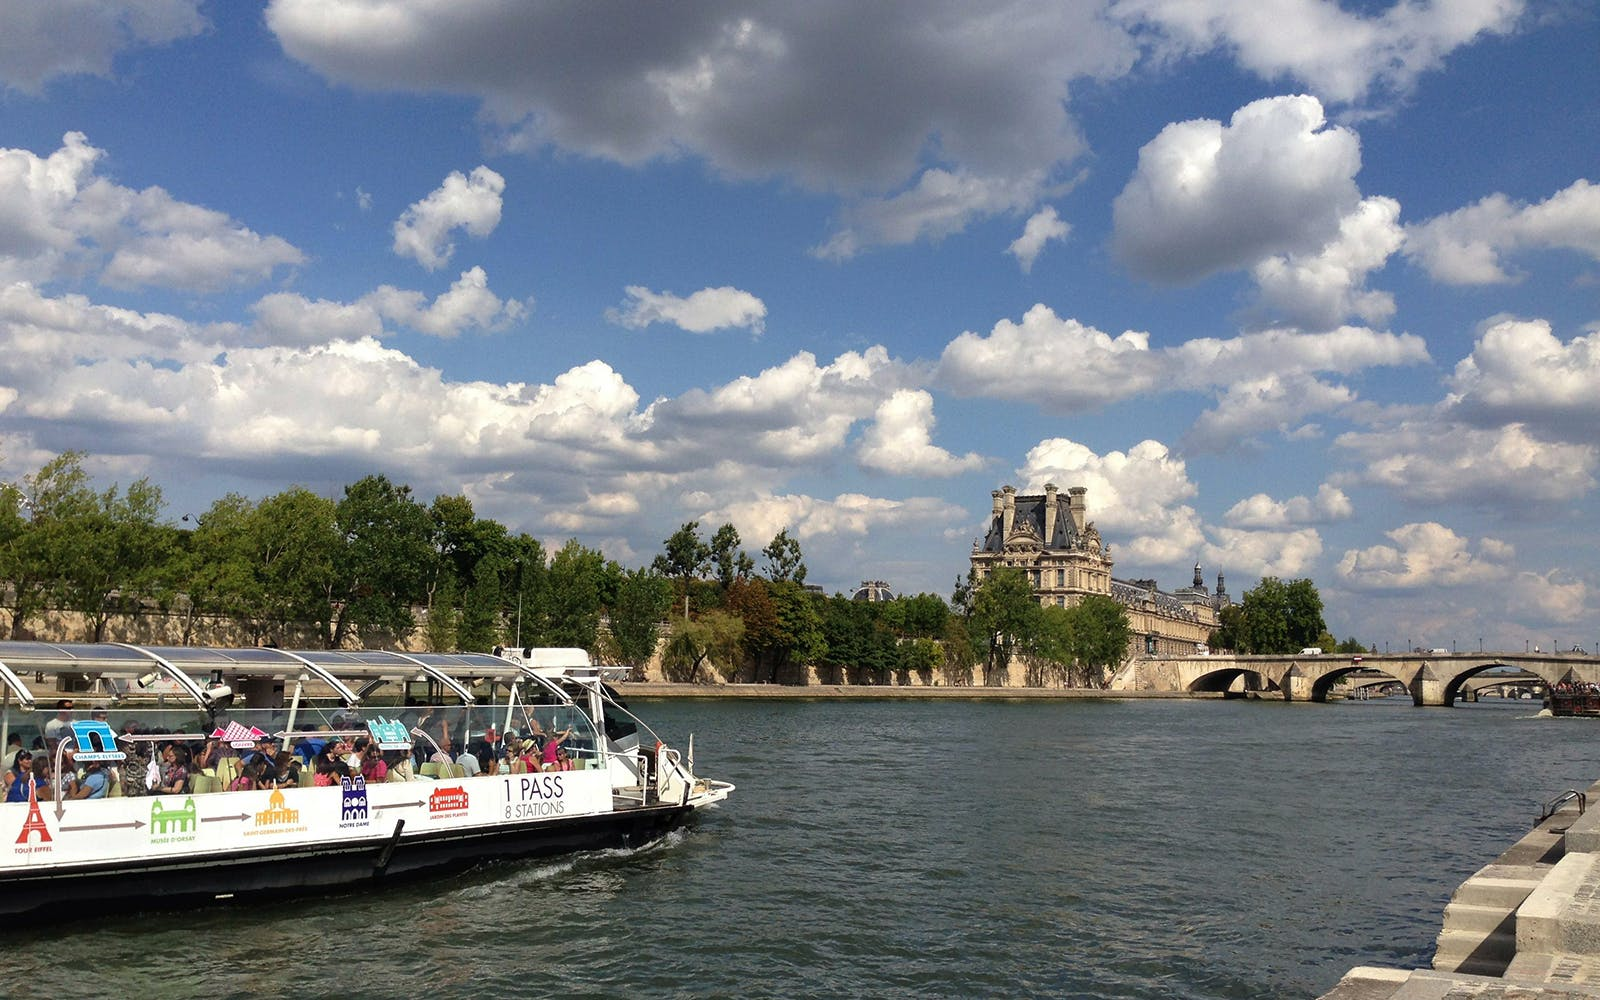 Batobus Seine River Cruise Unlimited Access